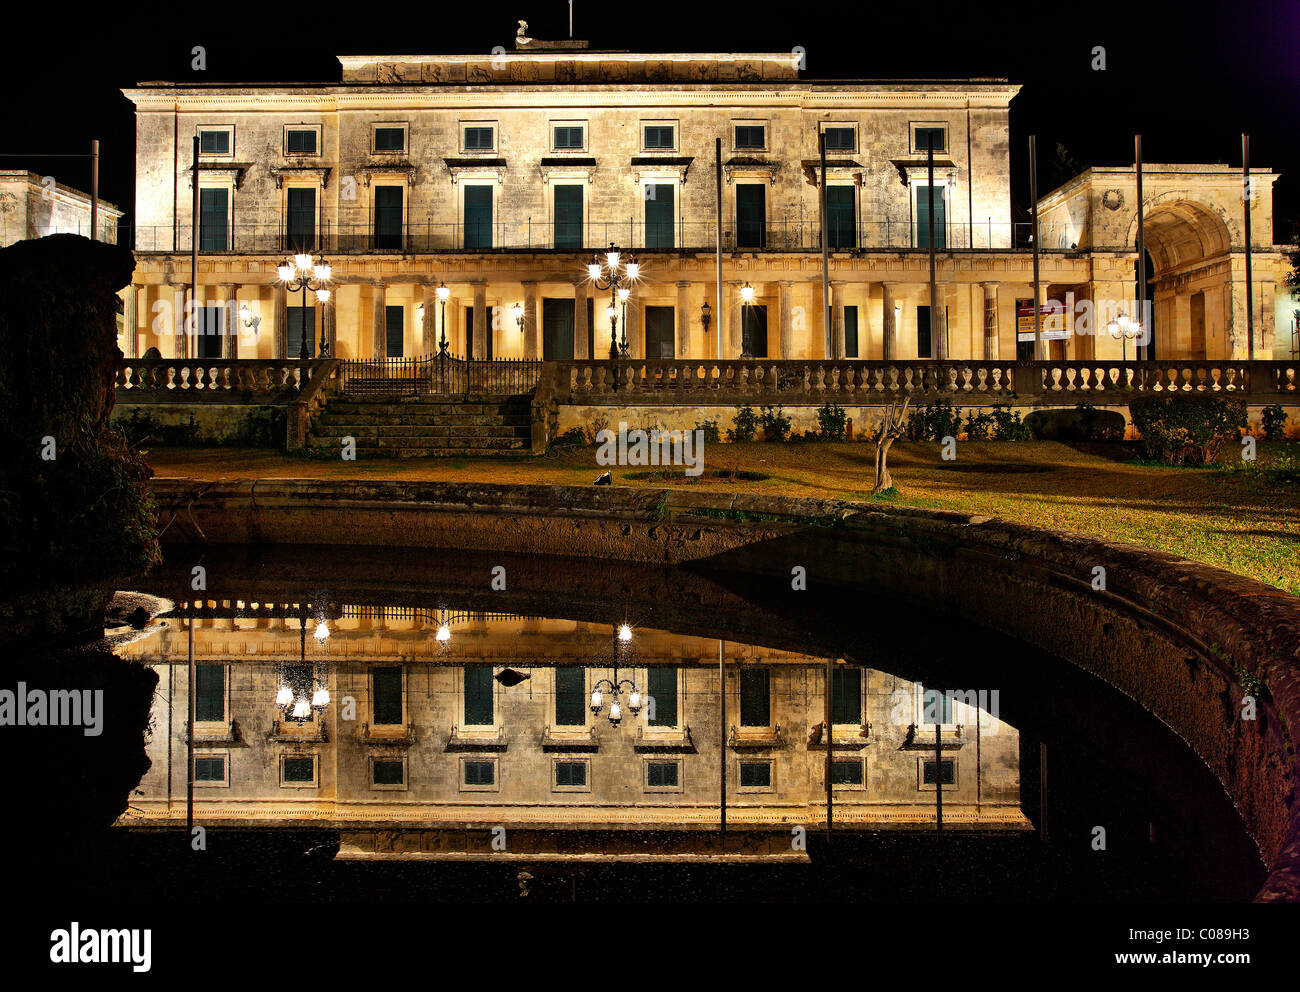 The 'Palace of Saints George & Michael' at the edge of Spianada and Liston, reflected in a fountain. - Stock Image